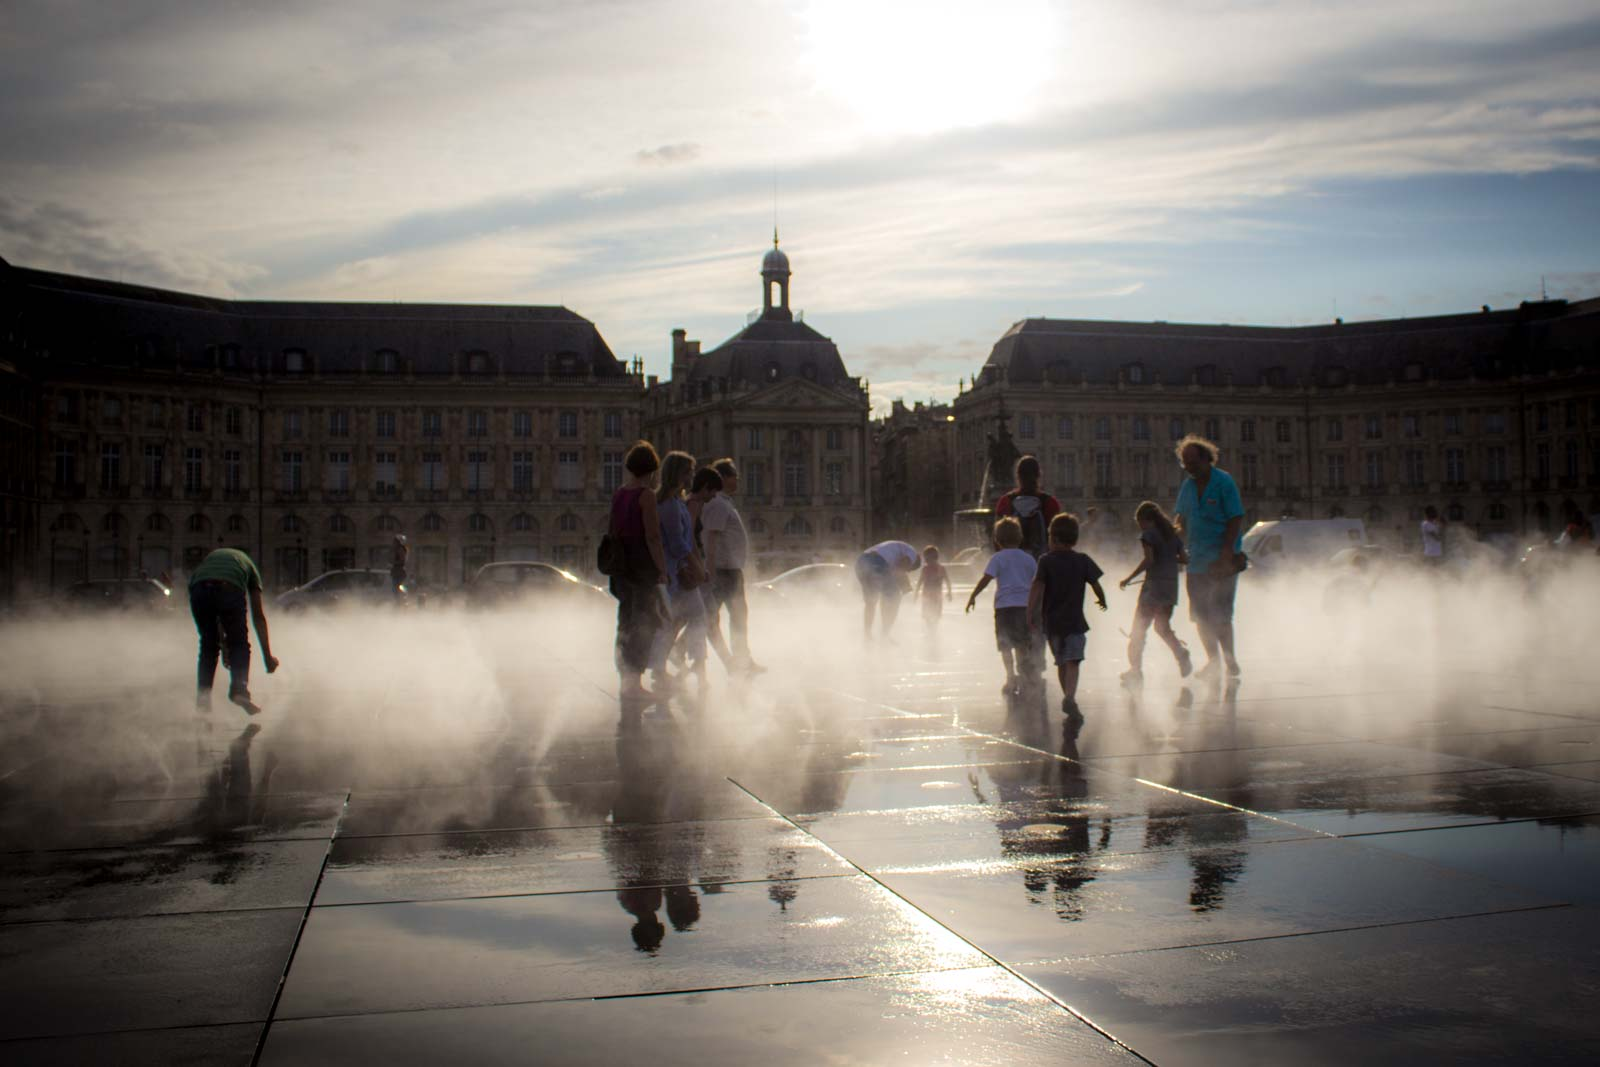 Fountains in Bordeaux, France